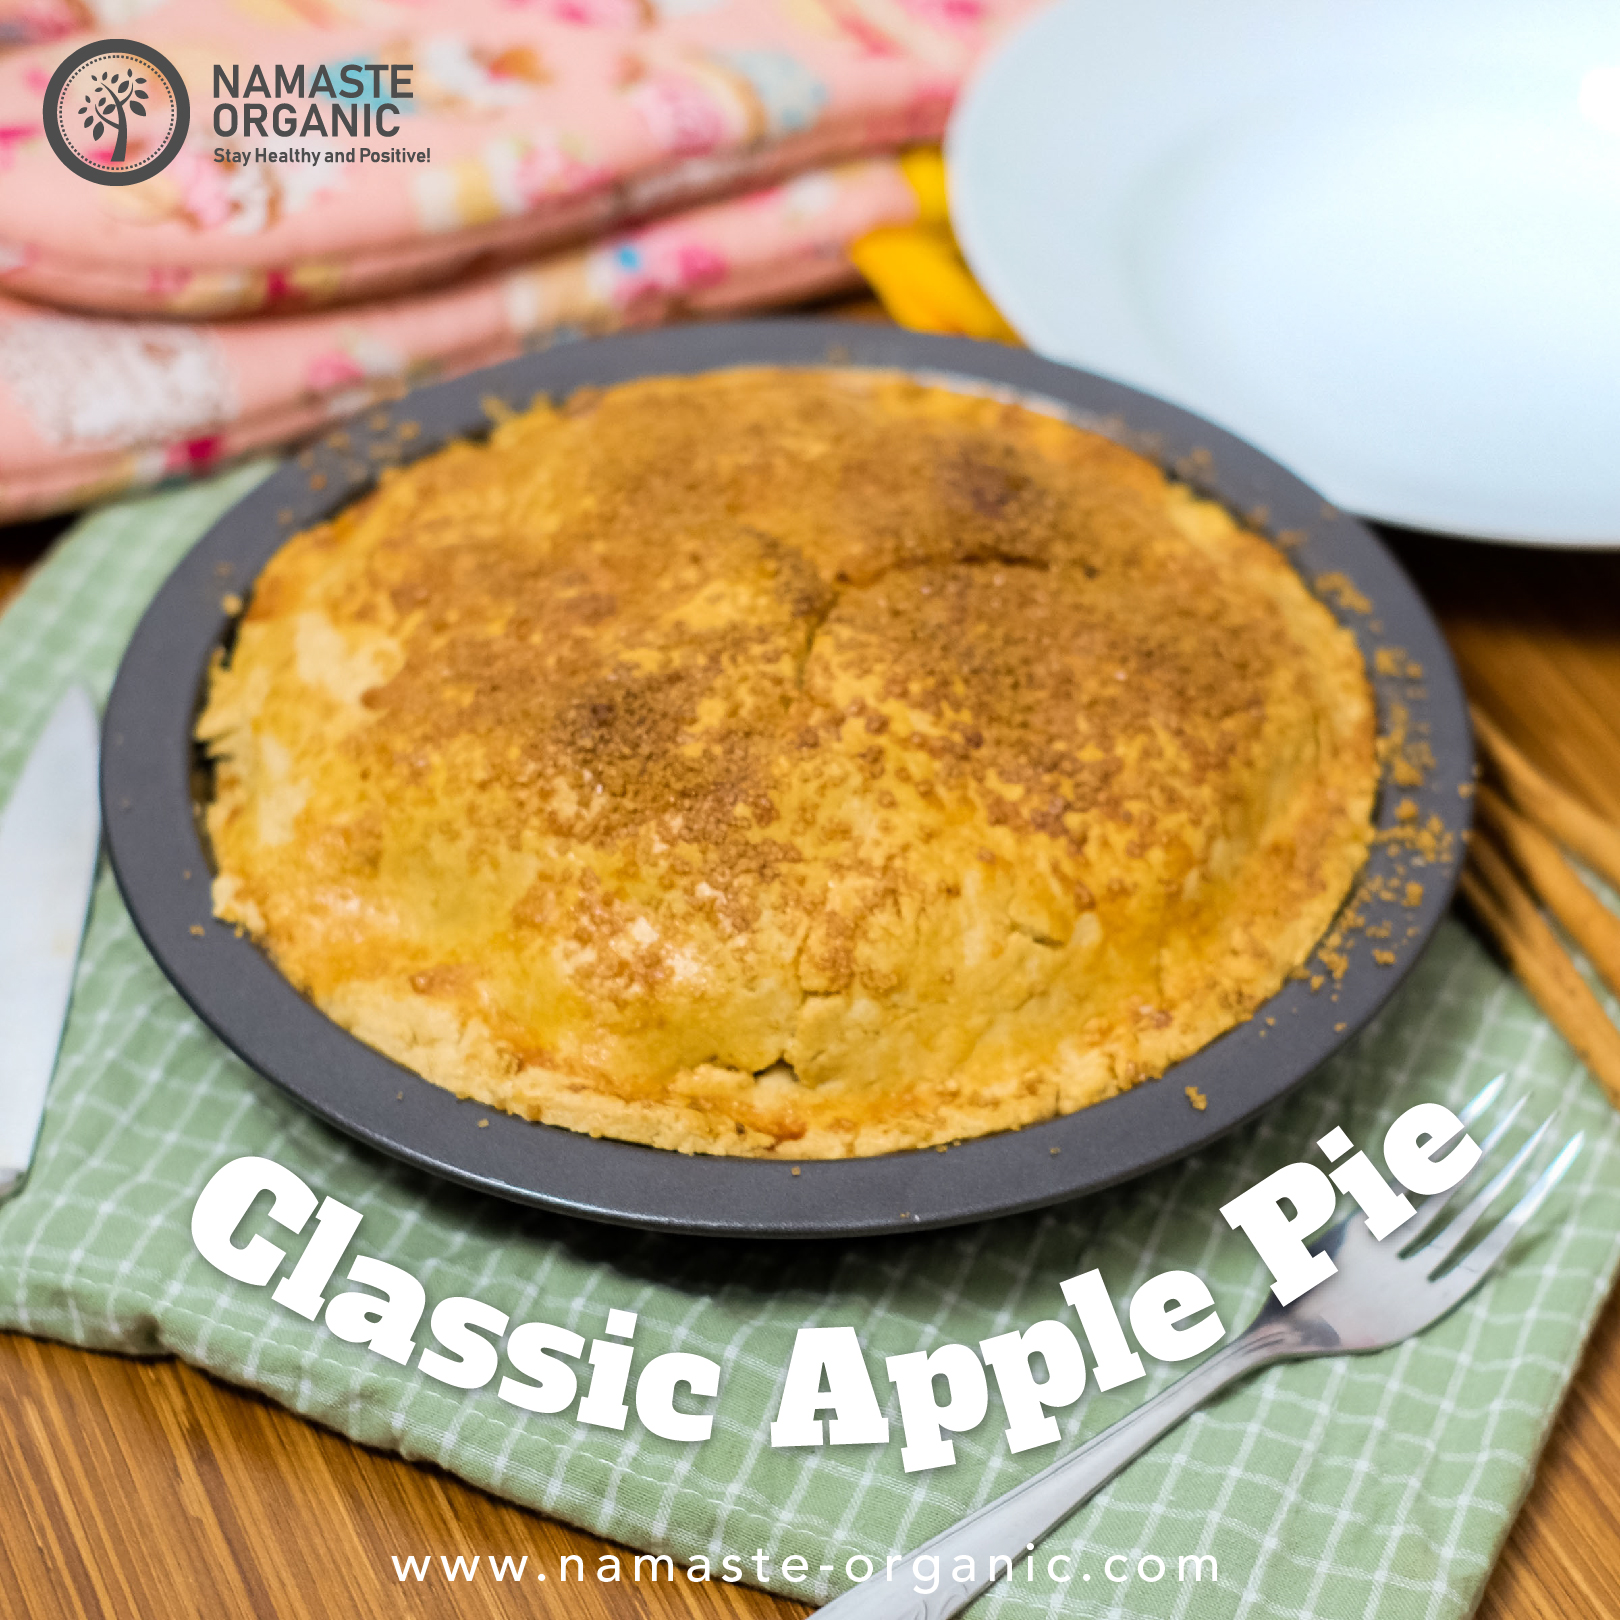 Whole Wheat Apple Pie image